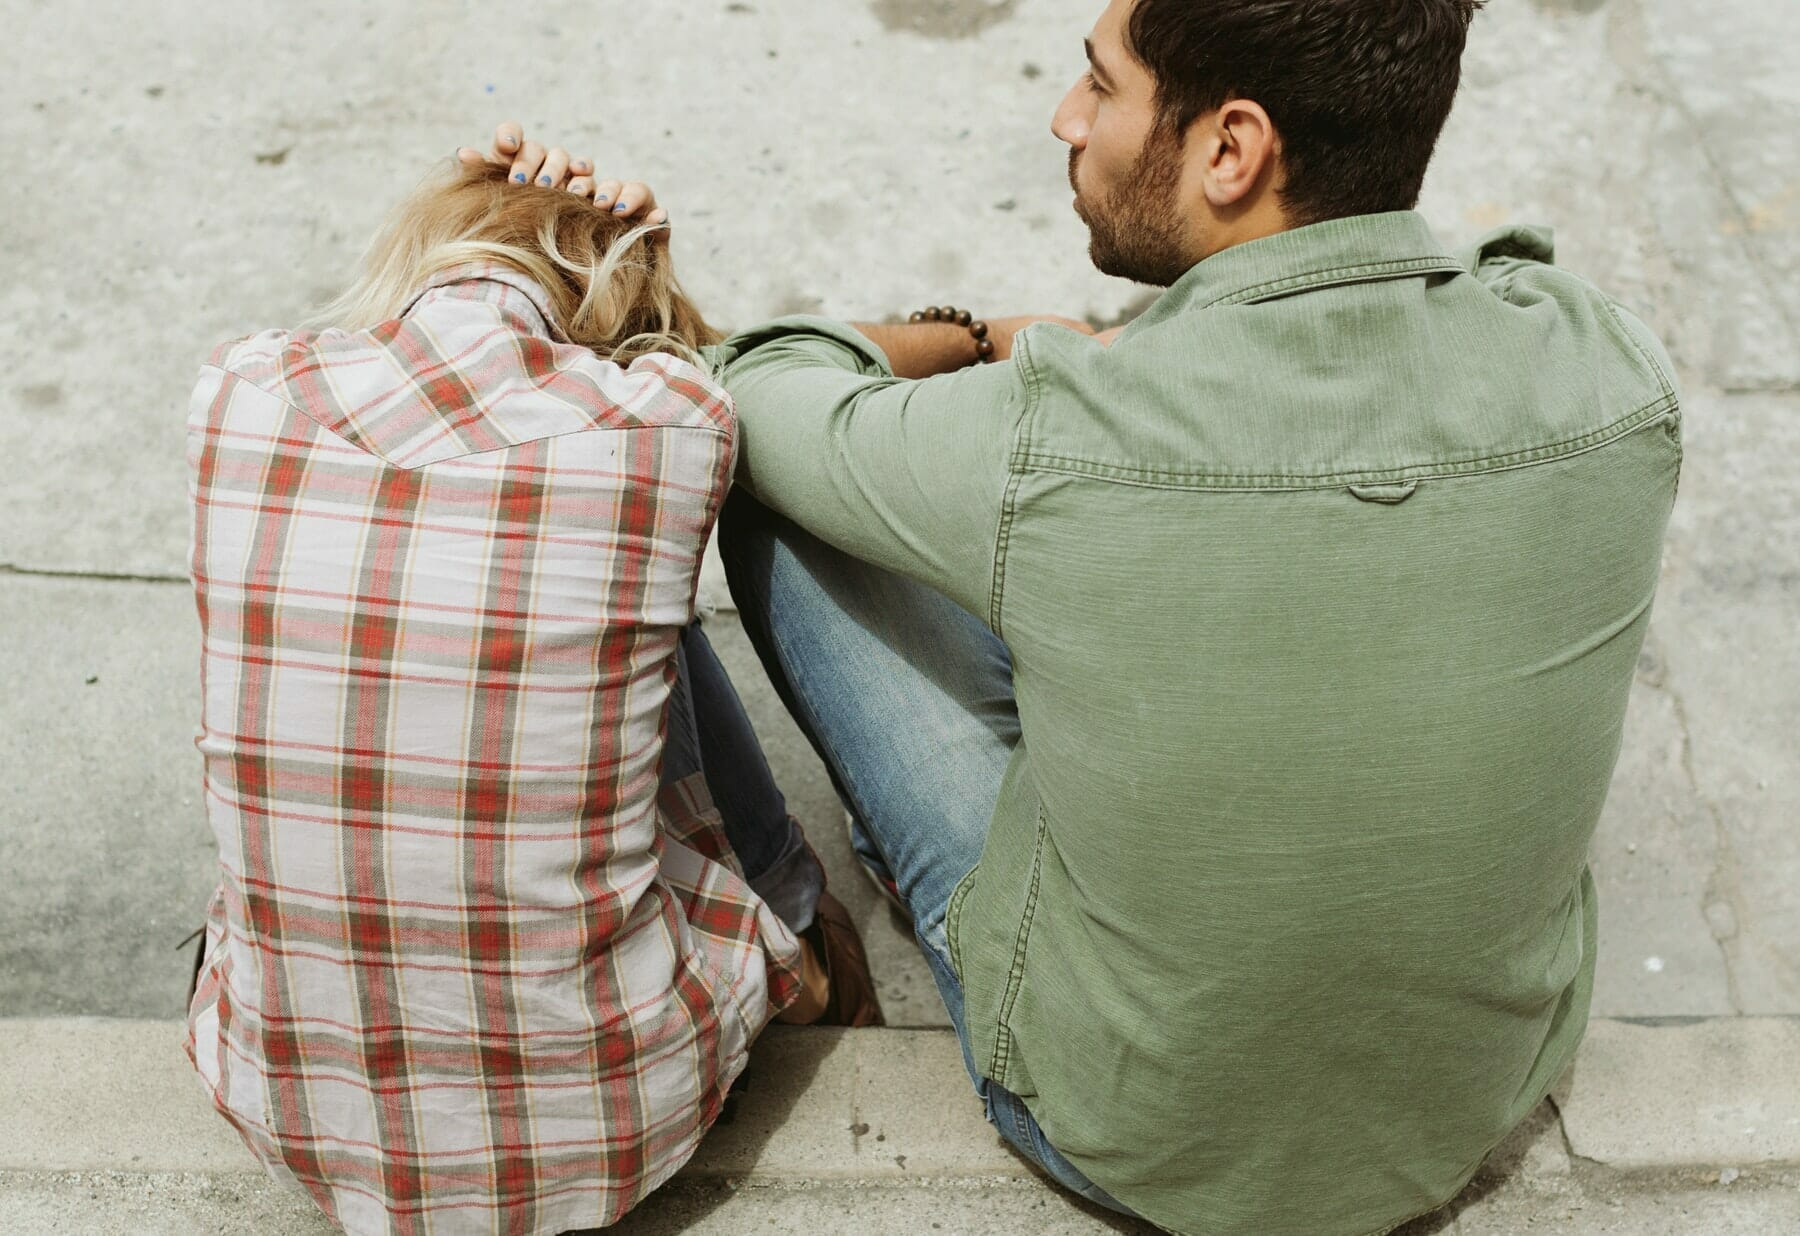 My Husband Argues with Me about Everything: What Do I Do? via @allamericanatlas